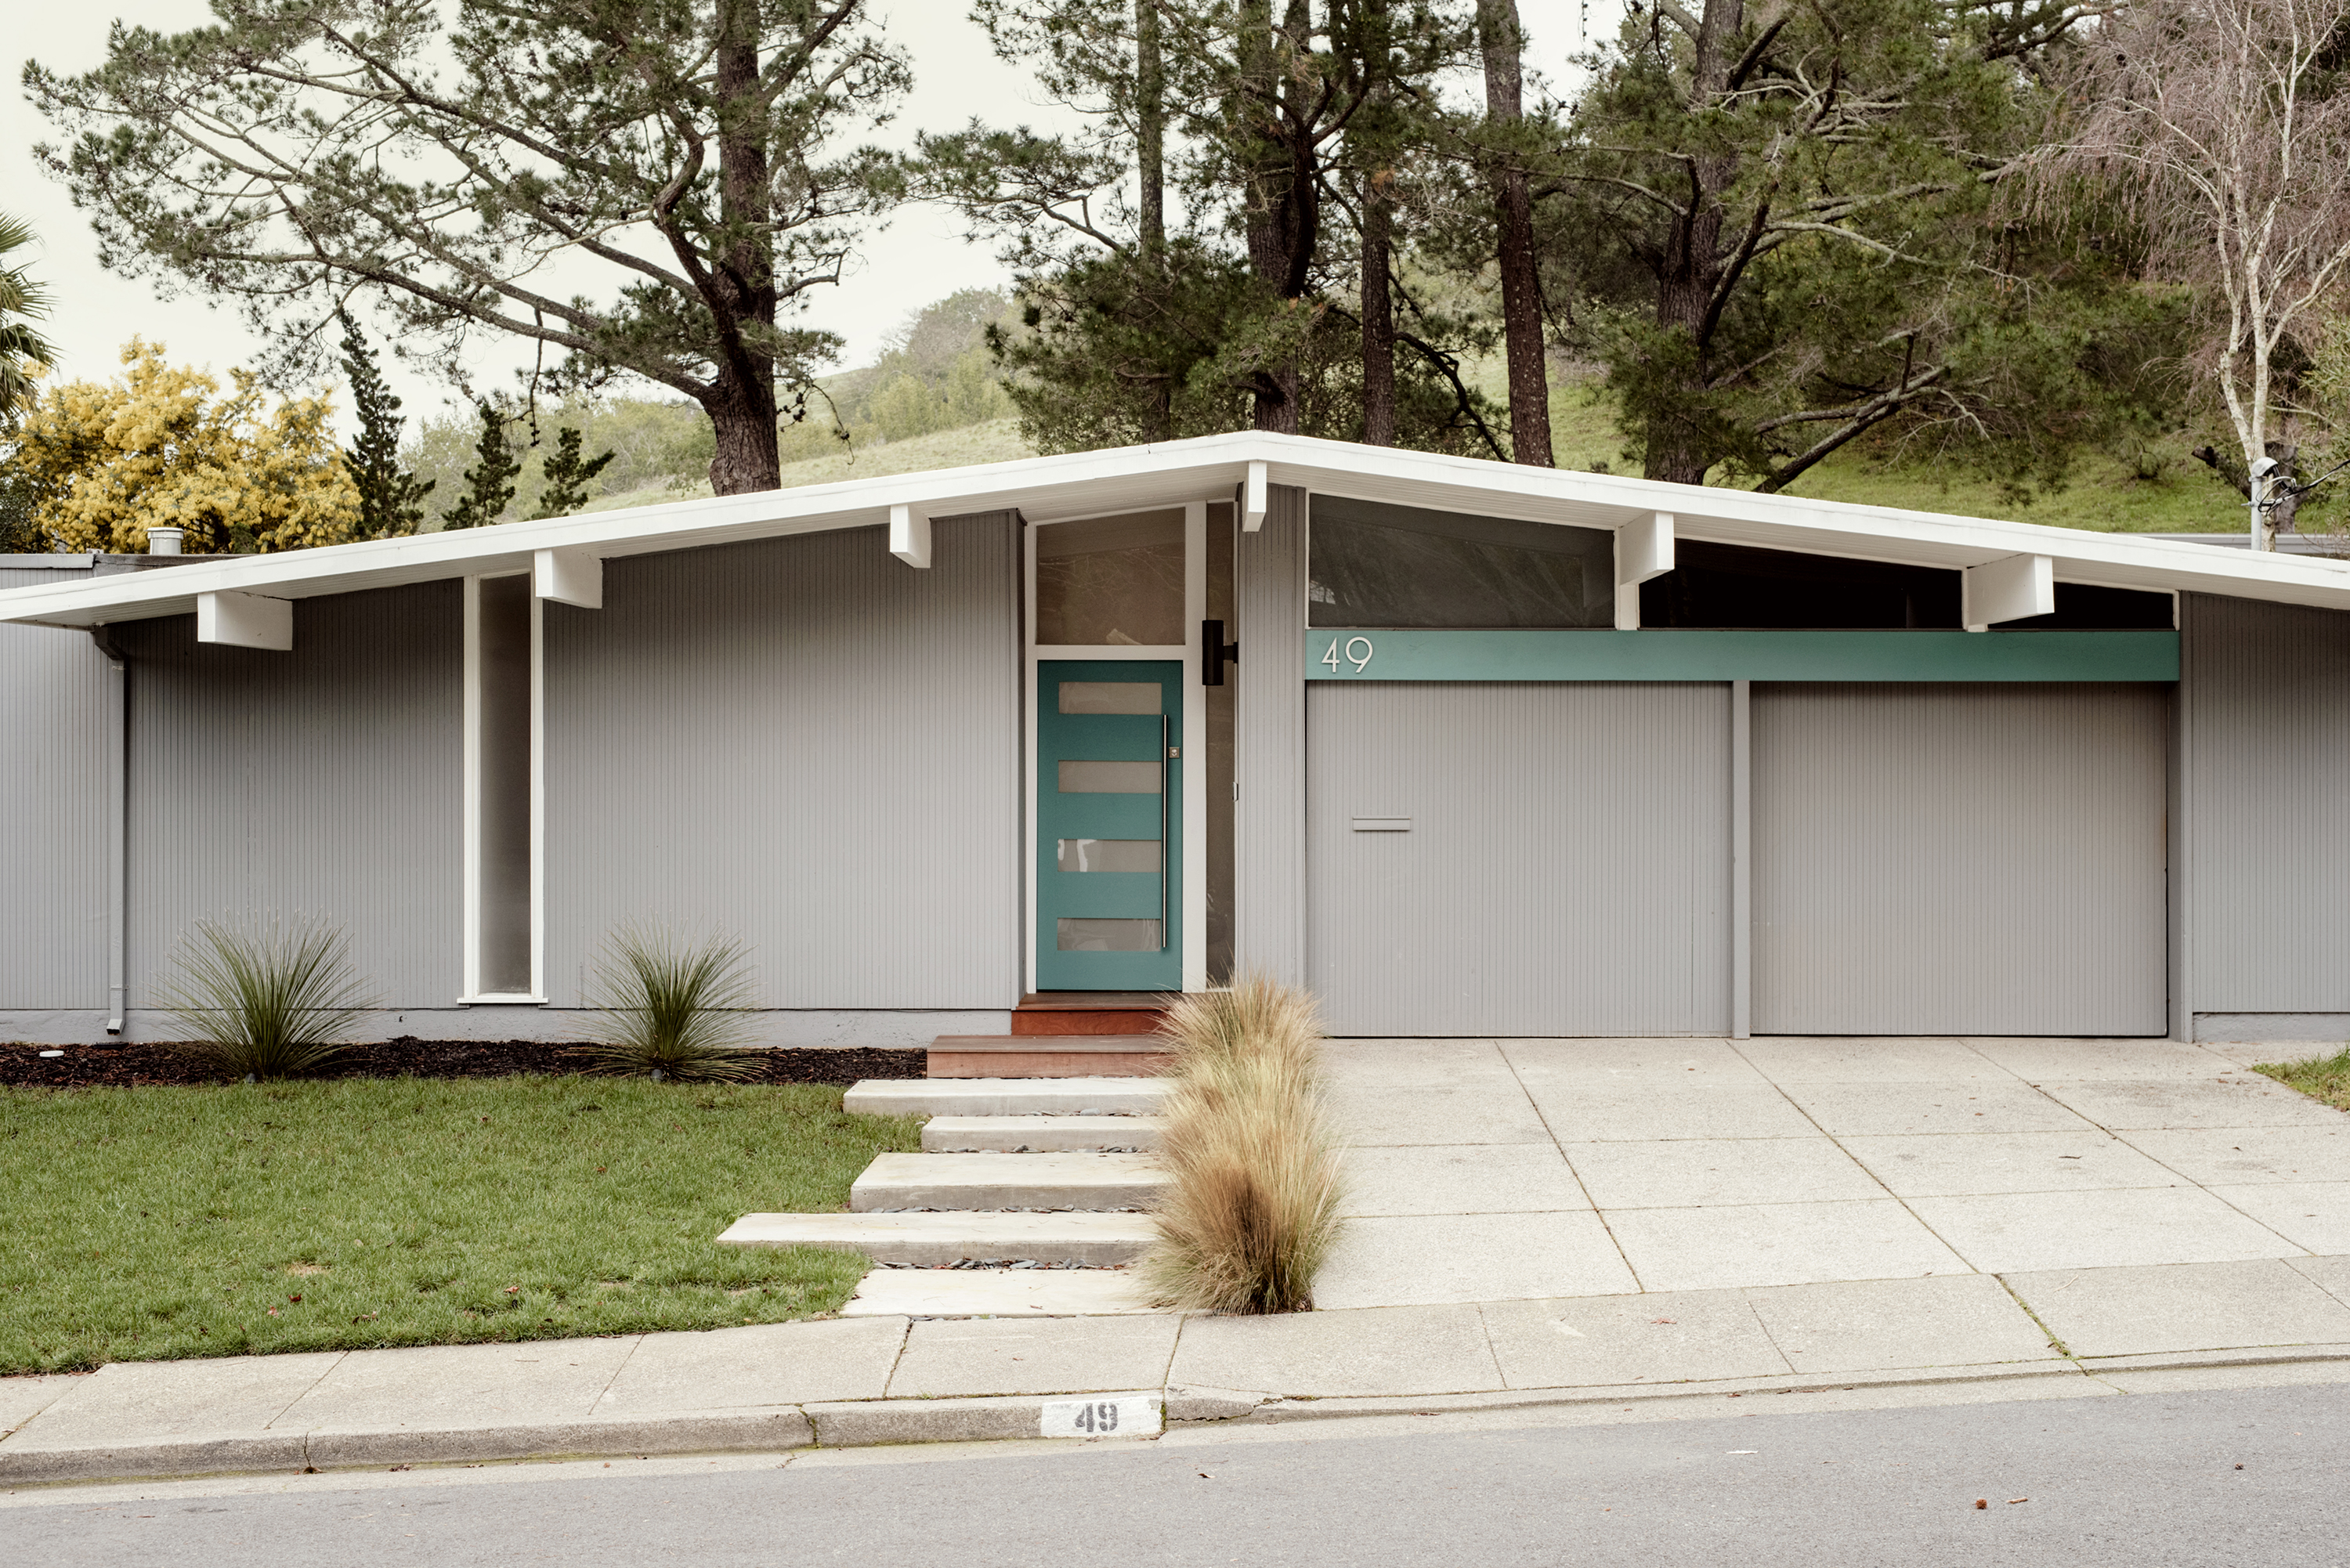 The exterior of a house which is painted grey. The door is green. There is a lawn in front of the house. There are trees in back of the house.